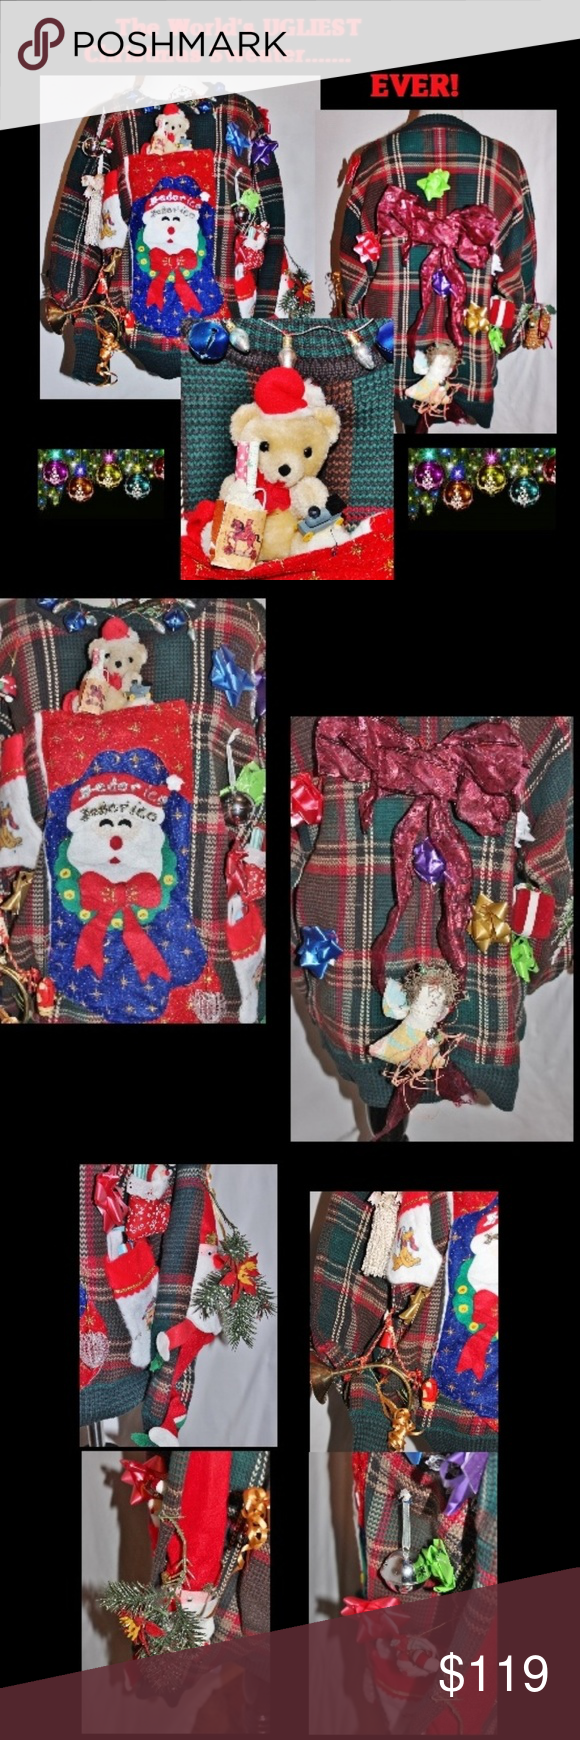 1 of a Kind UGLY Tacky Trashy CHRISTMAS Sweater By far, THE world's MOST ugliest hideous&unique Christmas sweater. At least the ugliest I have eva seen.If you need a sweater to win a contest, stand out in photos for UR own greeting cards or if U just want 2 B pointed to & laughed at, look NO FURTHER.Sweater is by Gant. The xtras were sewn on by hand, Truly 1 of a kind.The following items attached: stuffed teddy bear, lights, bells, a trumpet,angel,pine cones, ribbons, bows,Santa, a stocking, pre #howtomakeabowwithribbon